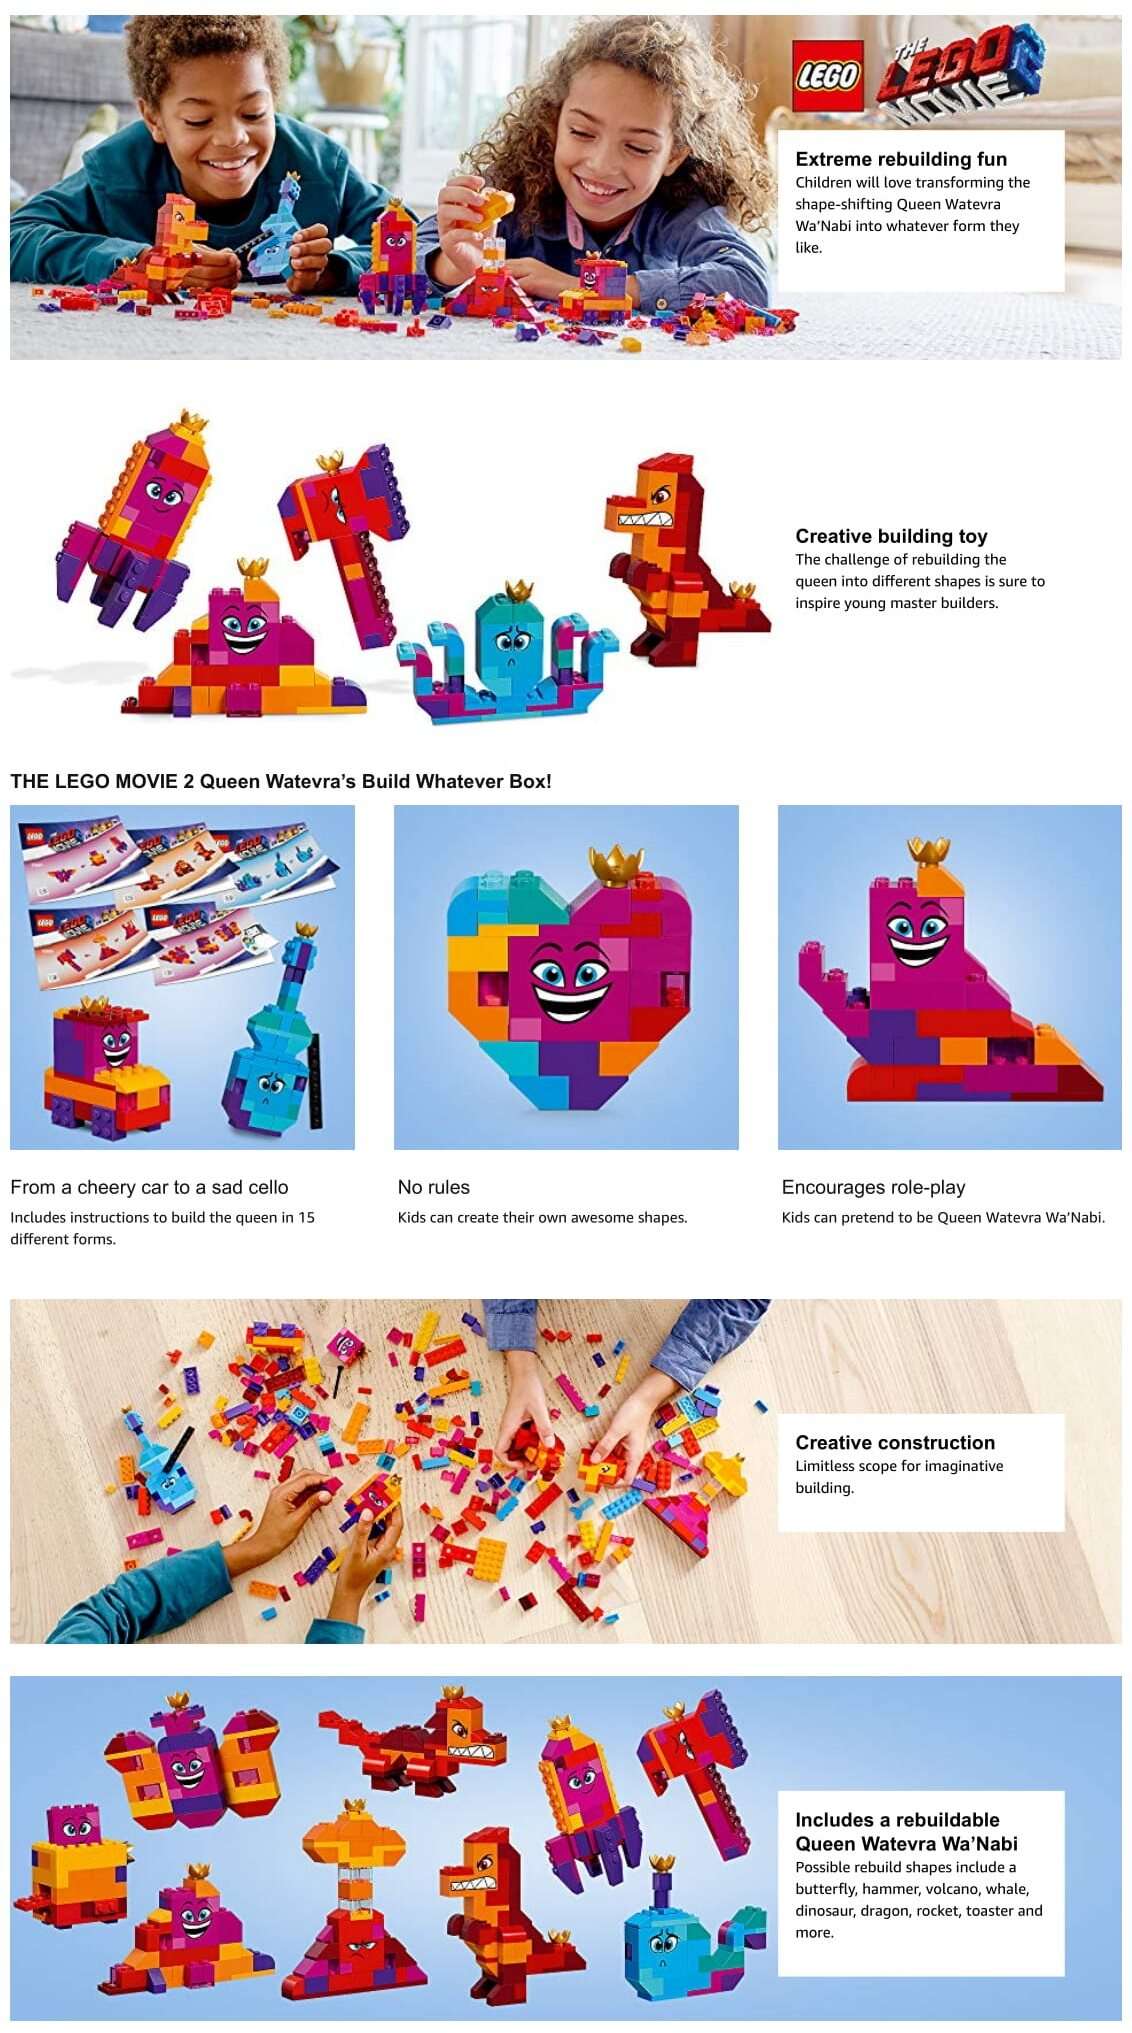 e29735db66c Specifications of THE LEGO MOVIE 2: Queen Watevra's Build Whatever Box! -  70825